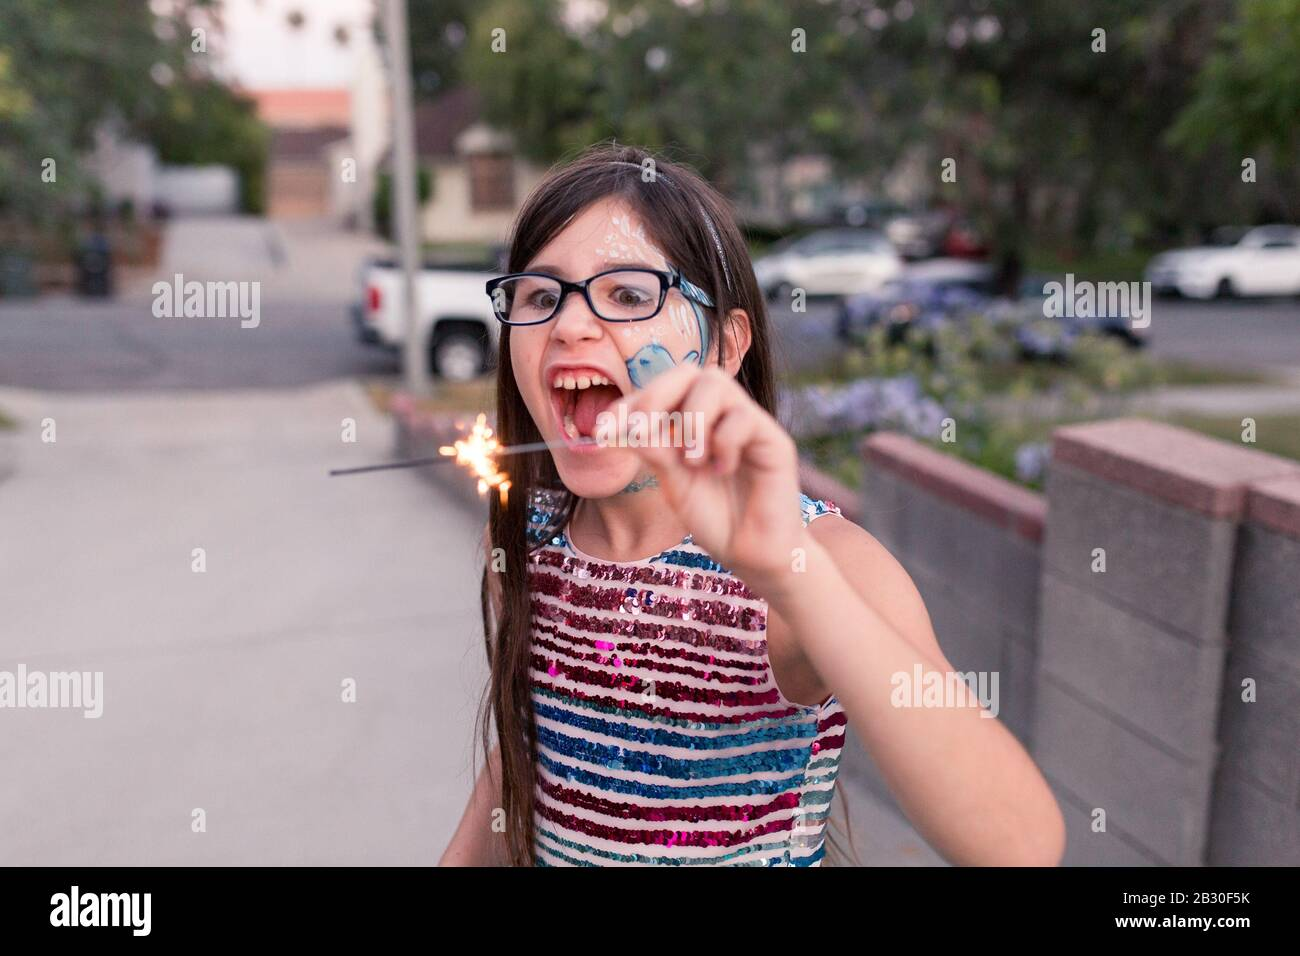 Kids are playing with sparkers on their driveway in the city on the 4th of July. Stock Photo